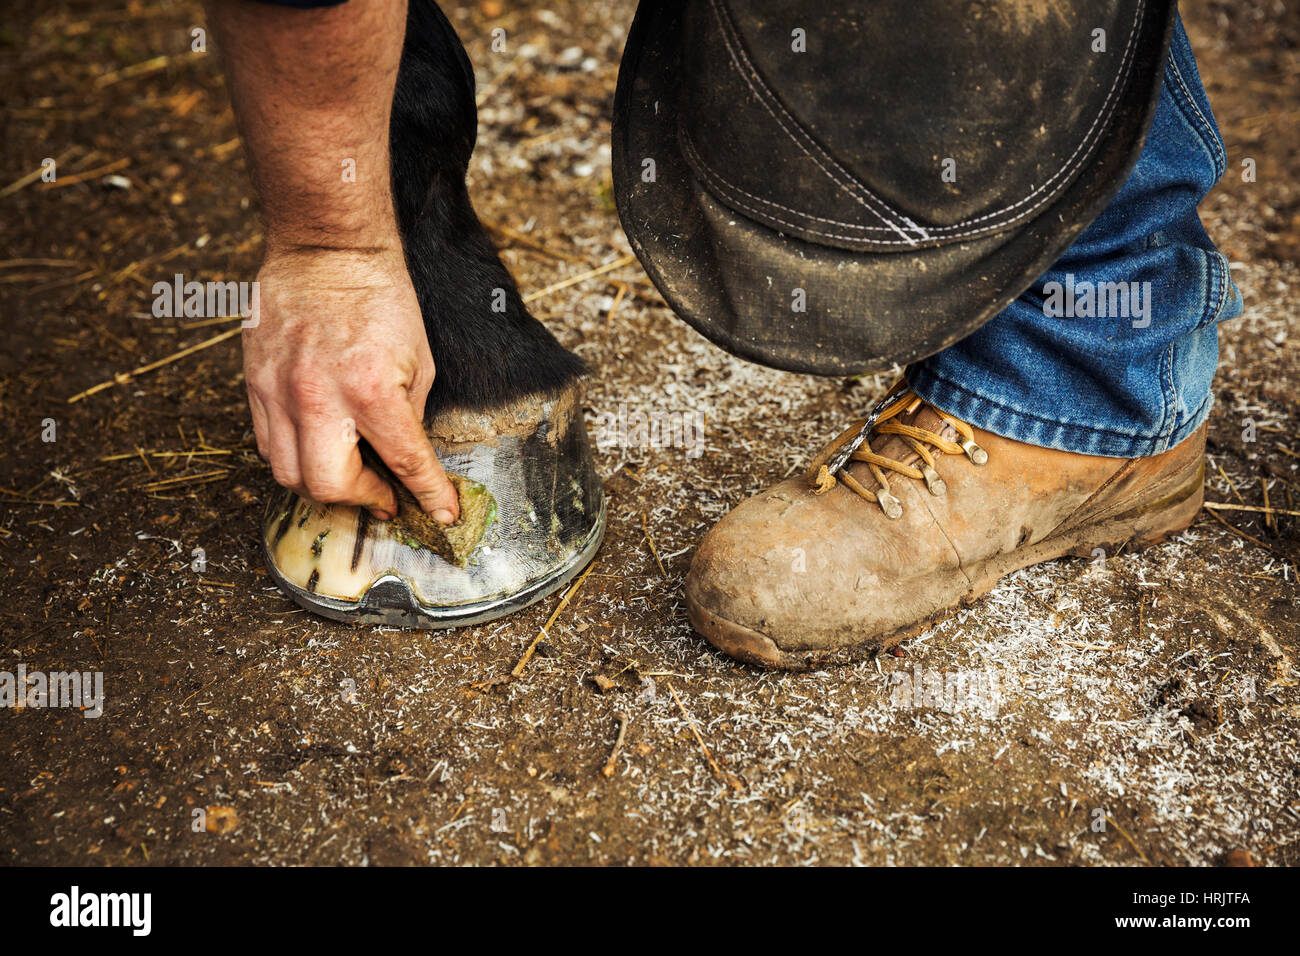 a man oiling and polishing the feet of a horse iwth a rag stock